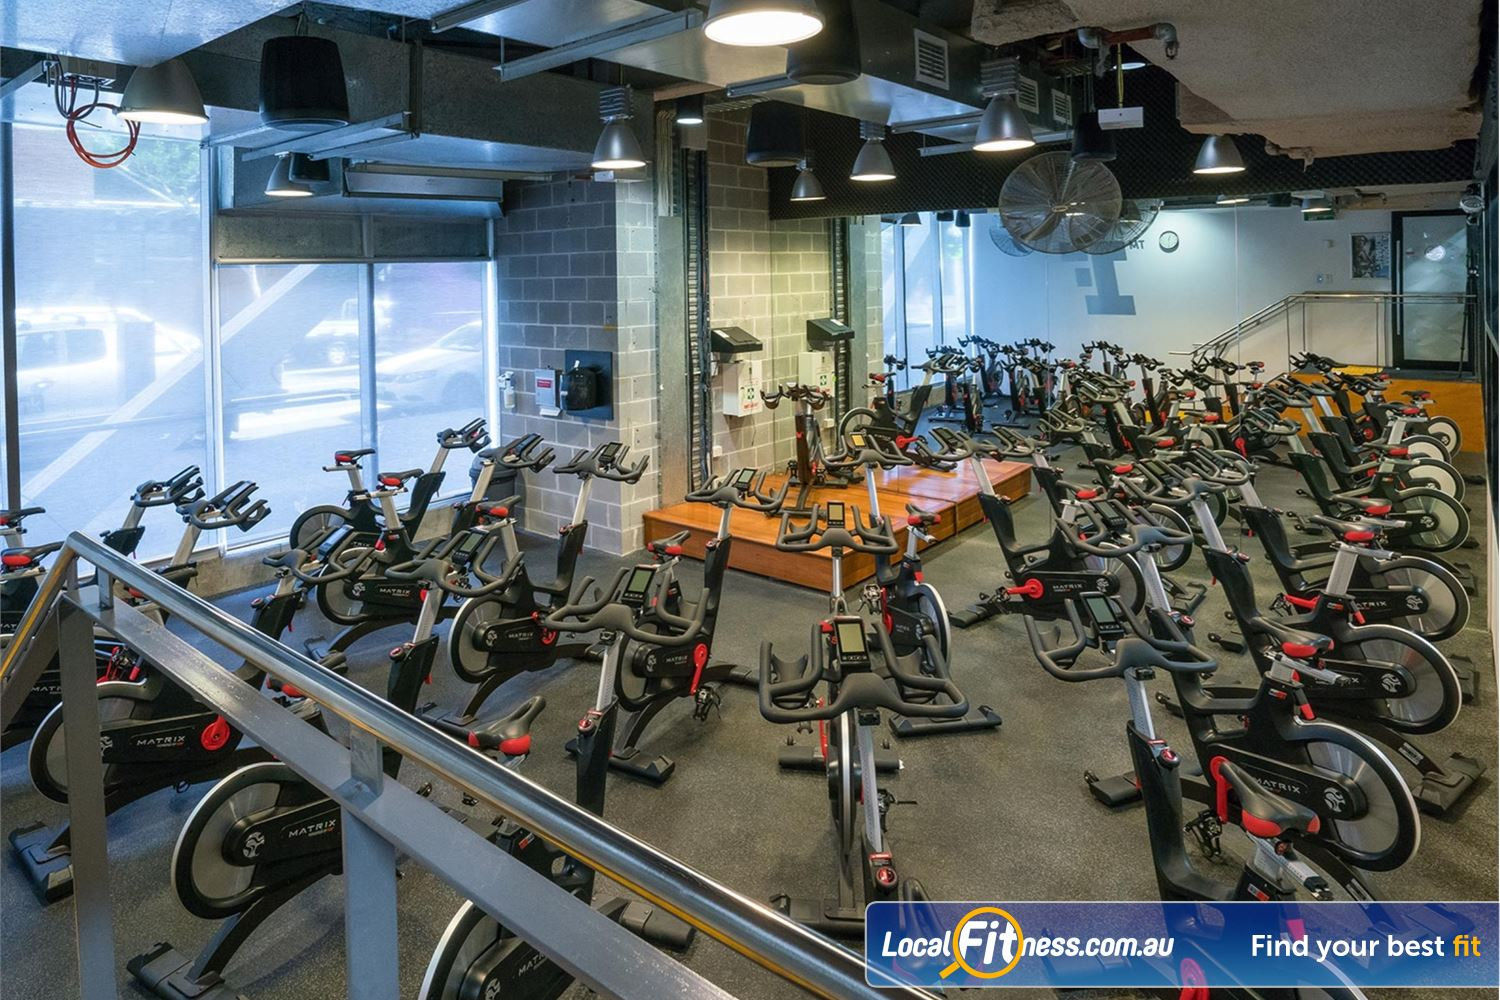 Fitness First Platinum Shelley St Sydney State of the art MATRIX bikes in our Sydney cycle studio.